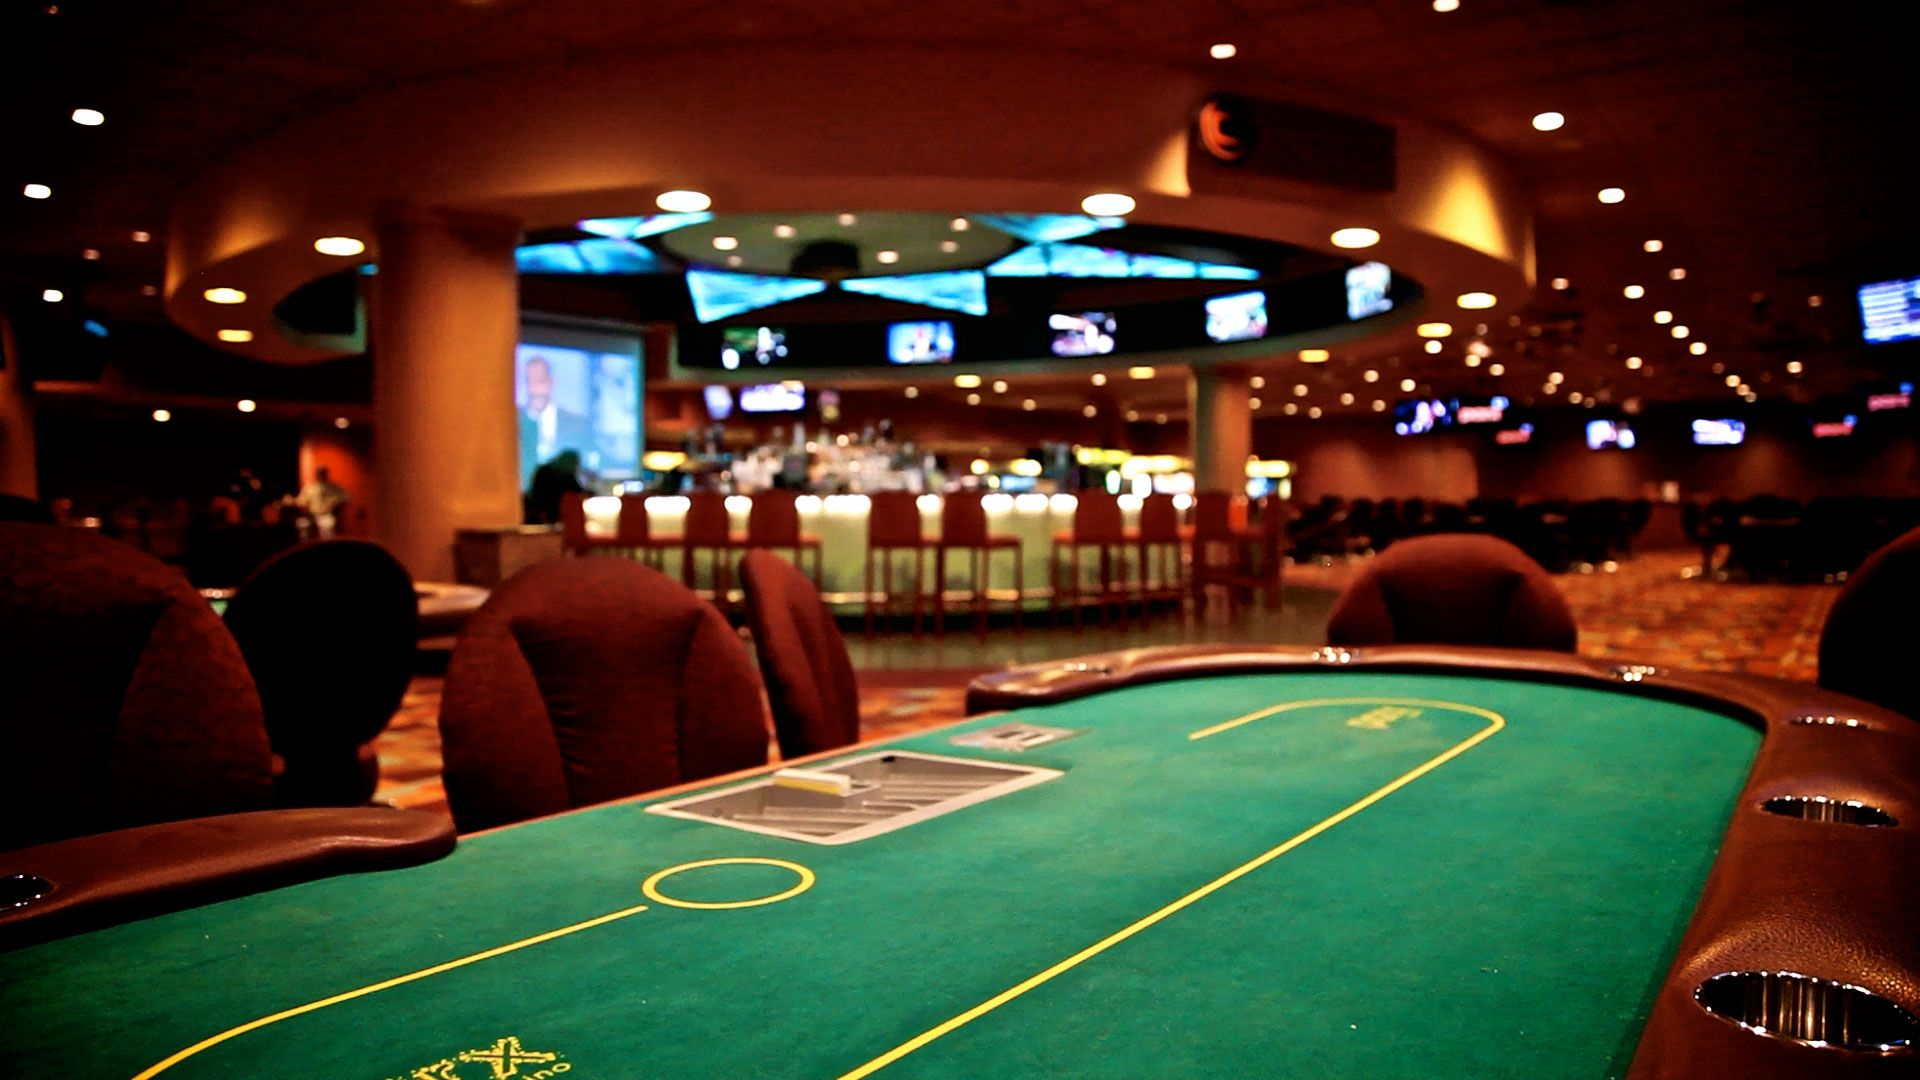 The social and fun that makes poker appealing